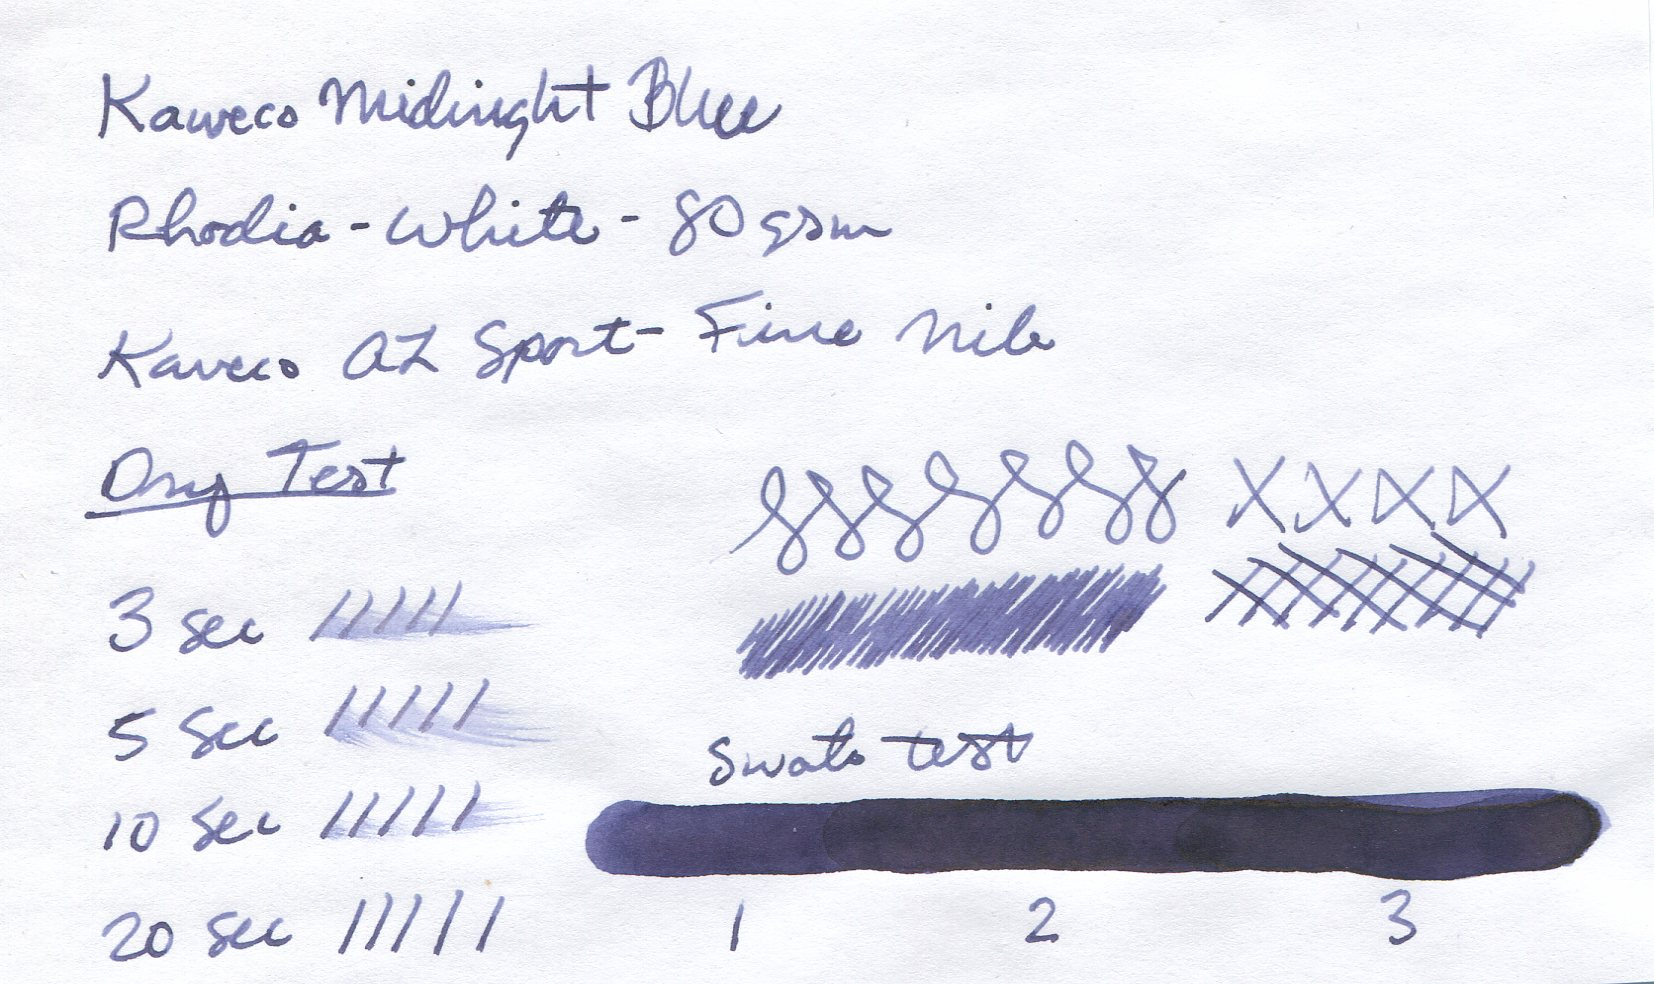 Kaweco-Midnight-Blue-Rhodia-055